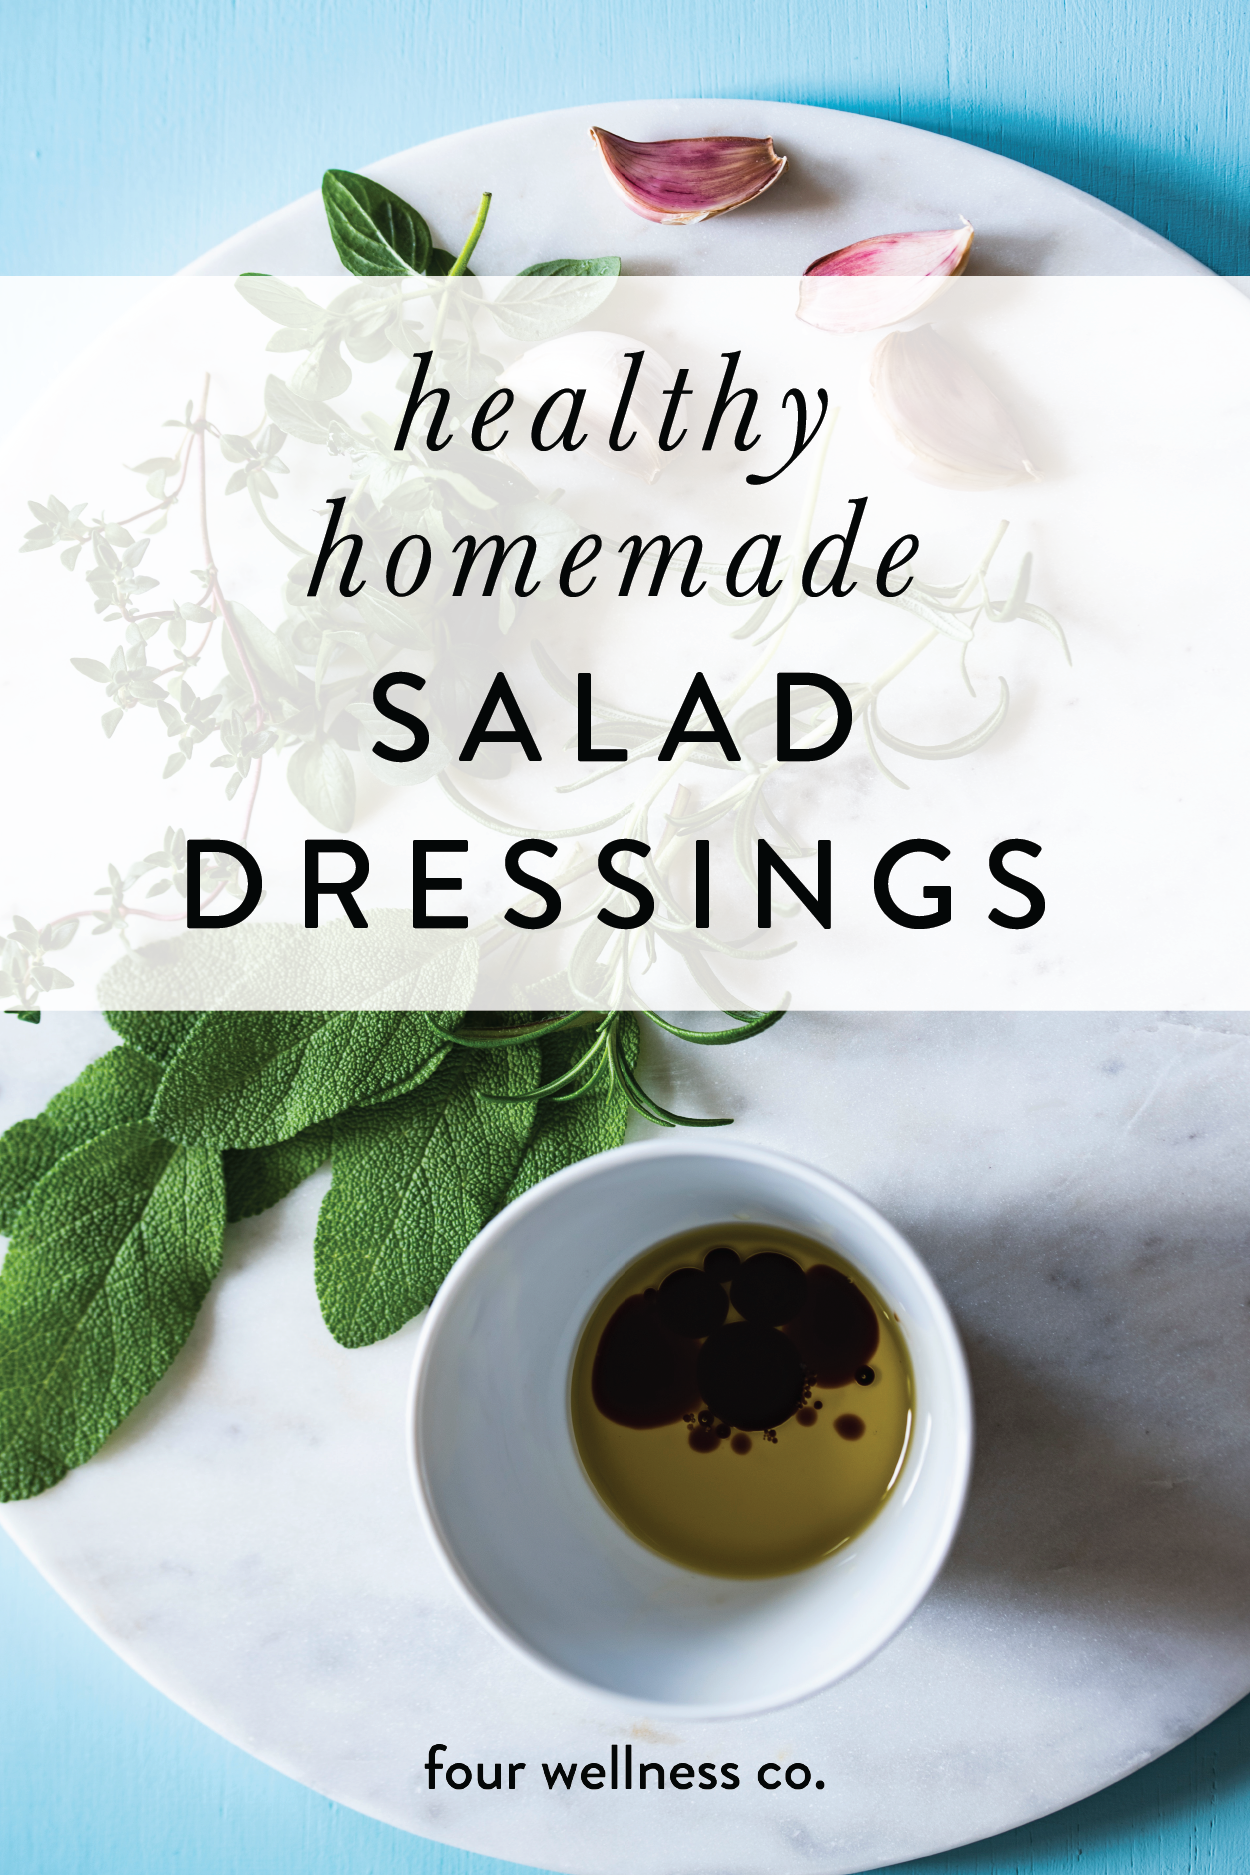 Our favorite healthy homemade salad dressing recipes made with real food ingredients.